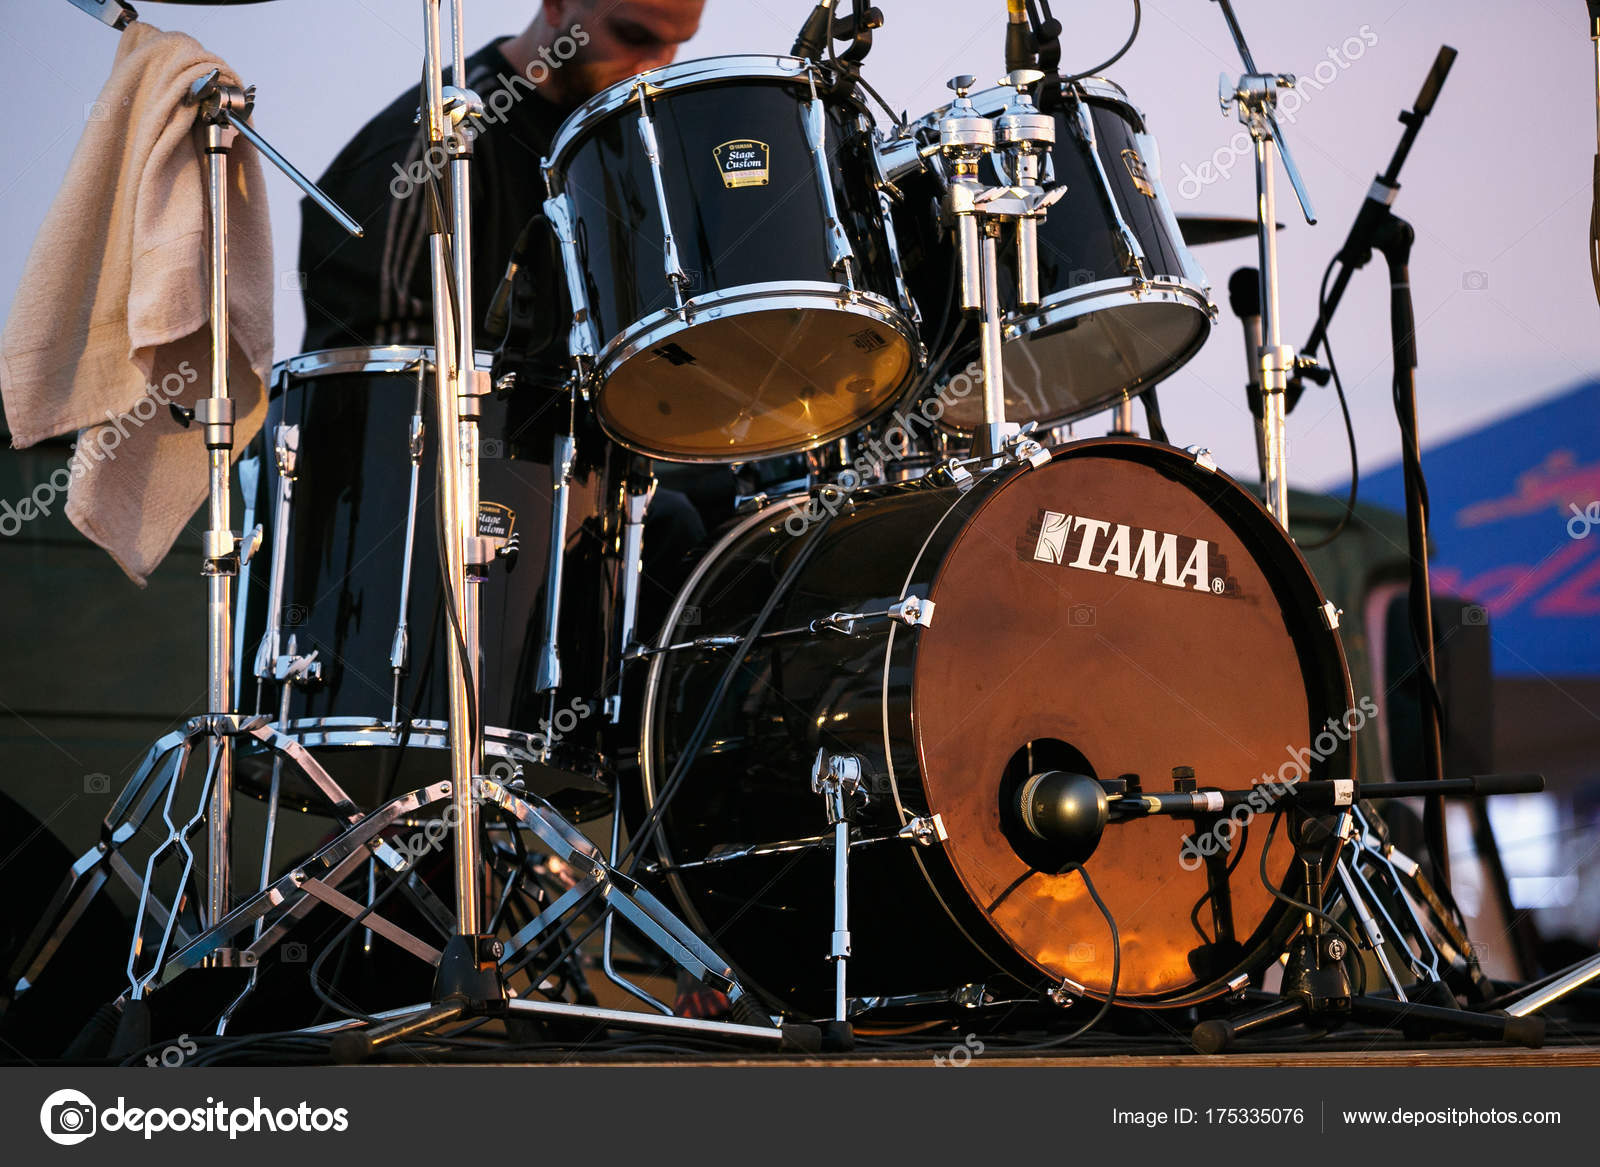 Professional Drum Set On Rock Concert Stage Stock Editorial Photo